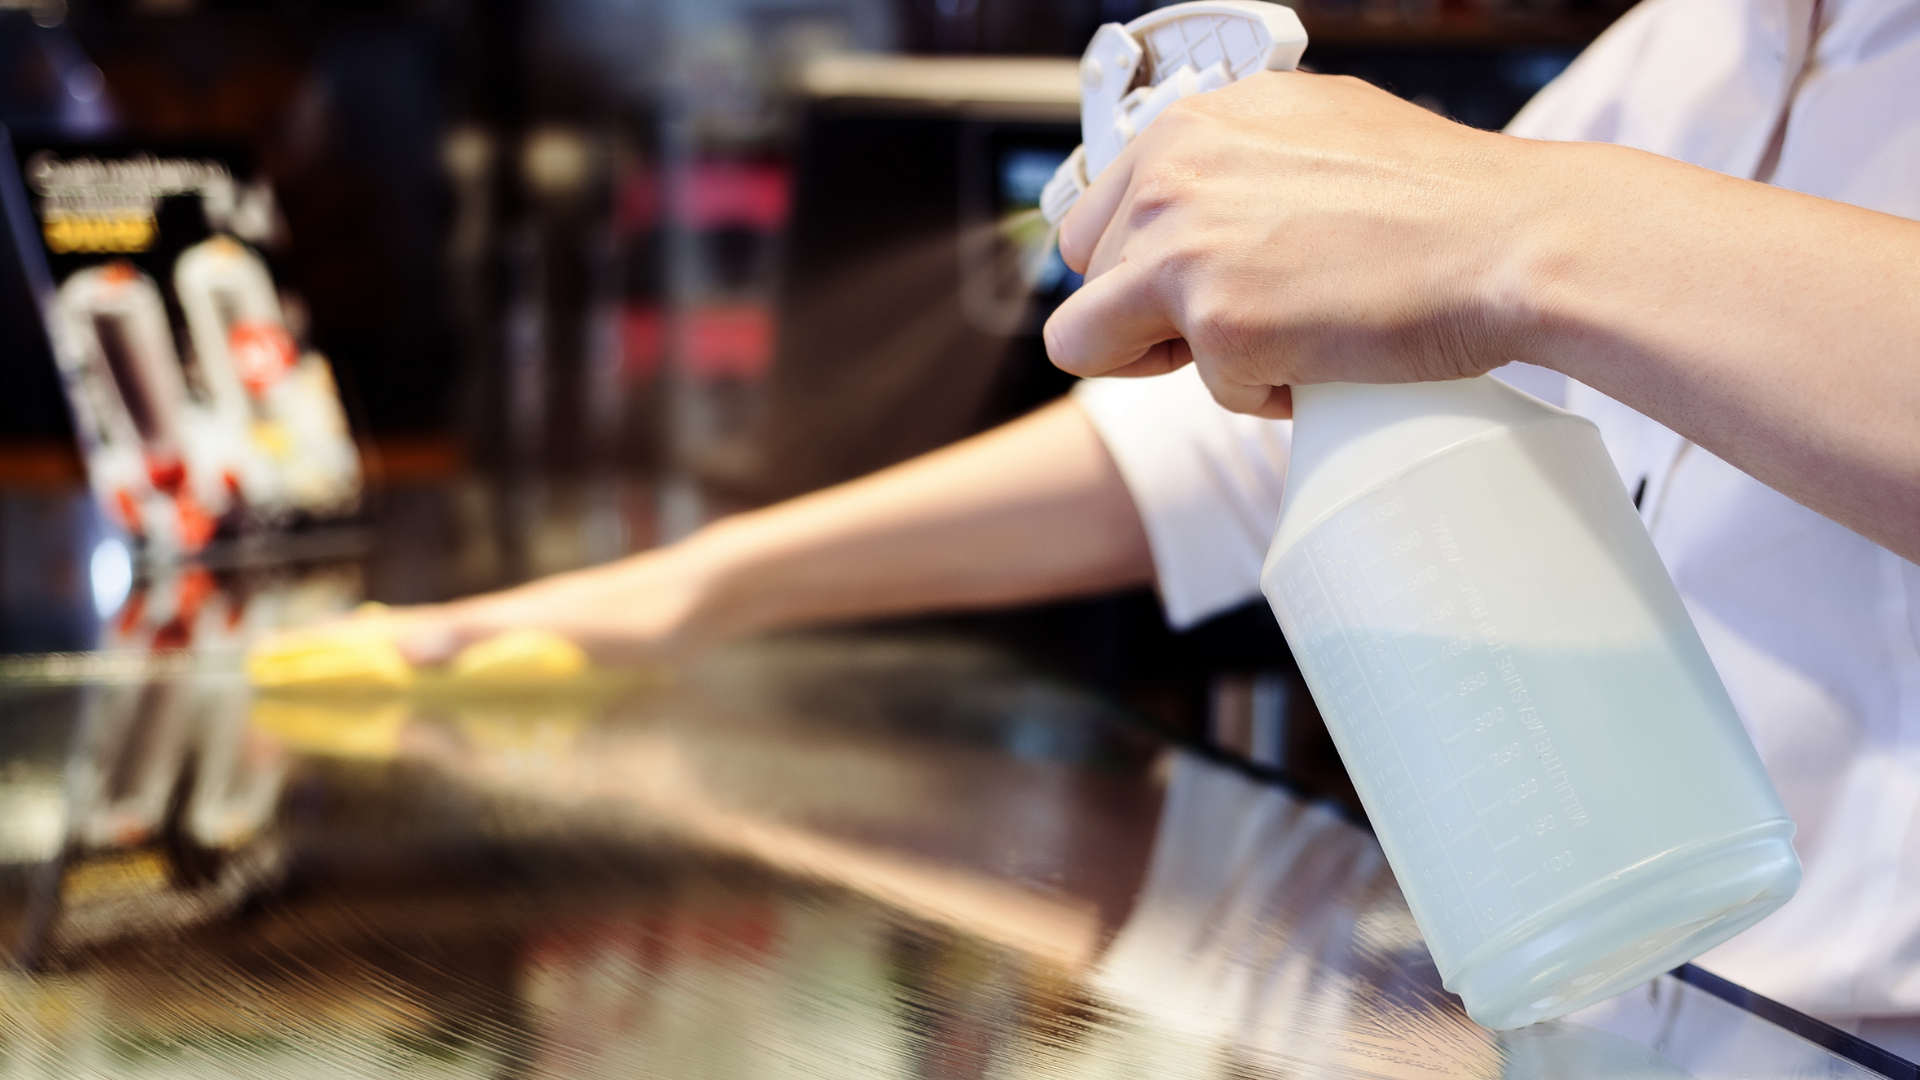 The difference between maid and commercial cleaning services